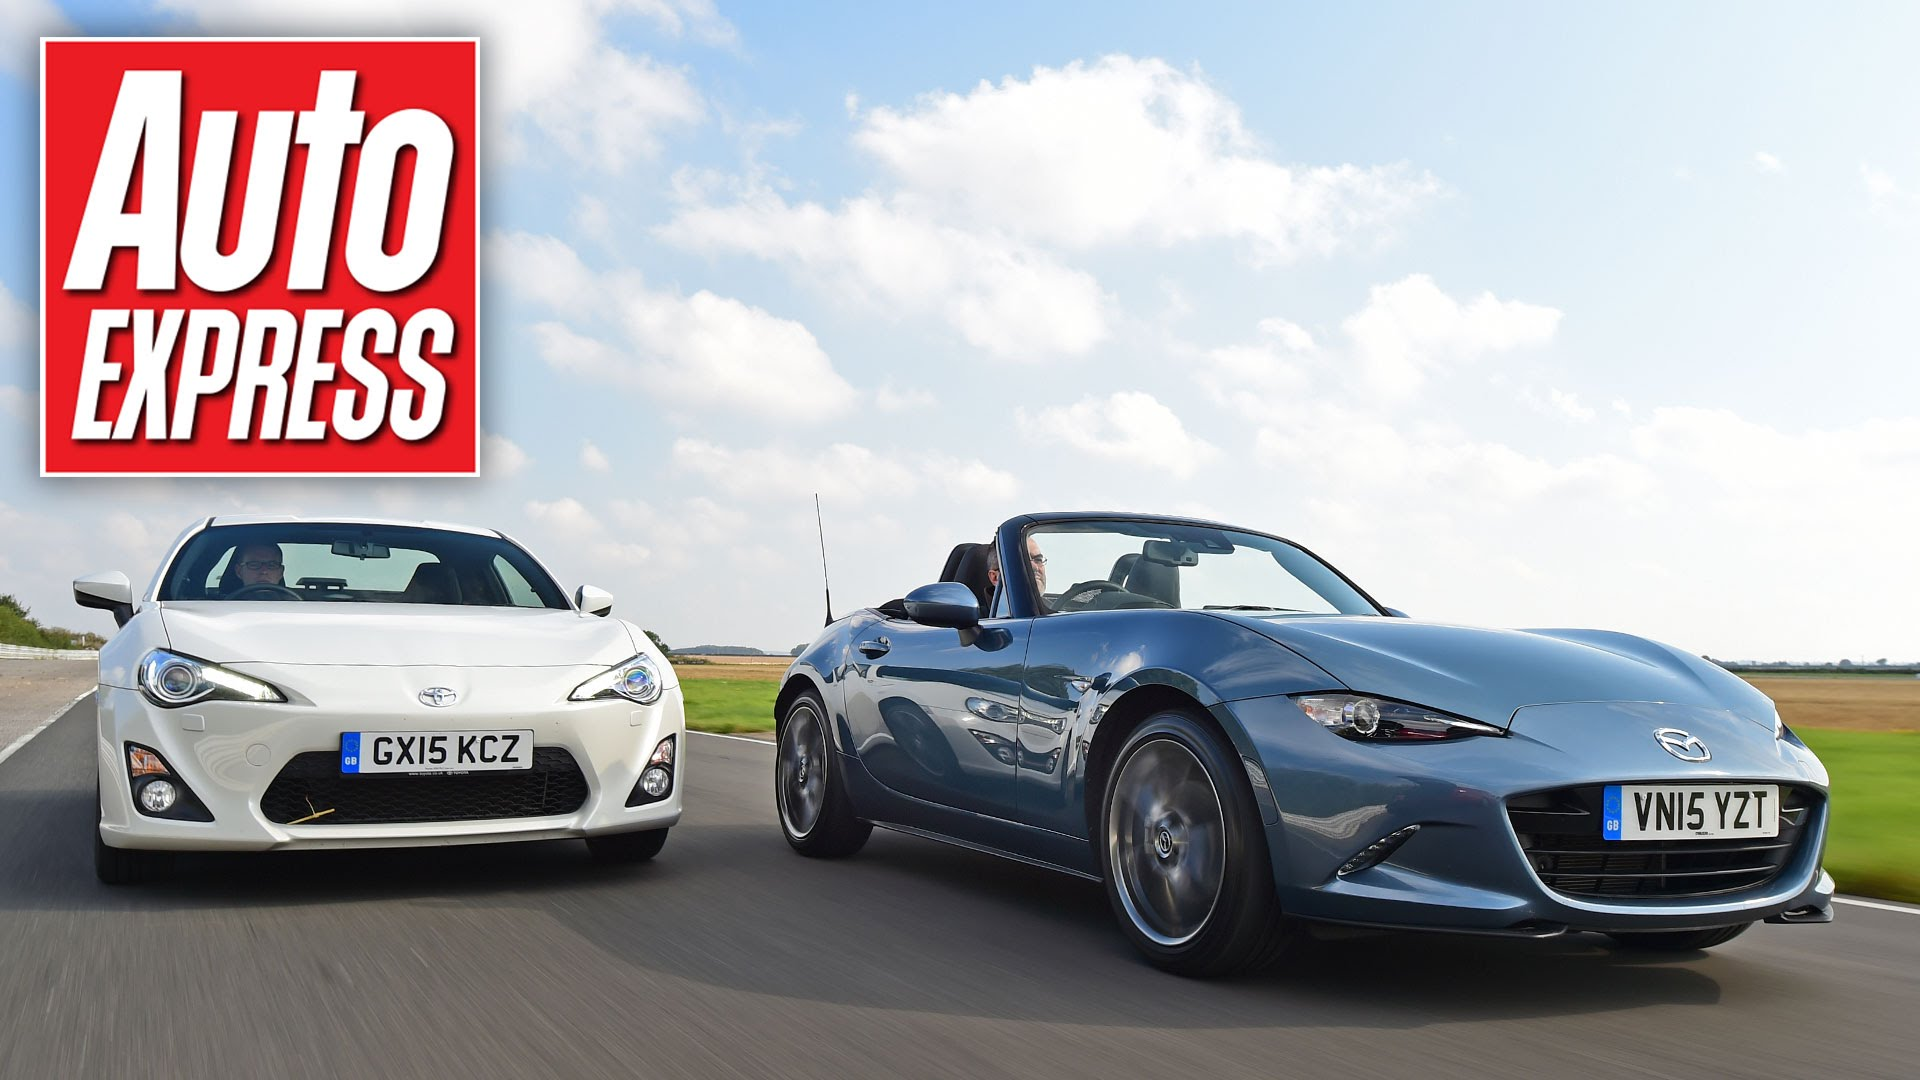 2016 Mazda MX-5 Miata Battles Toyota GT86 on Track